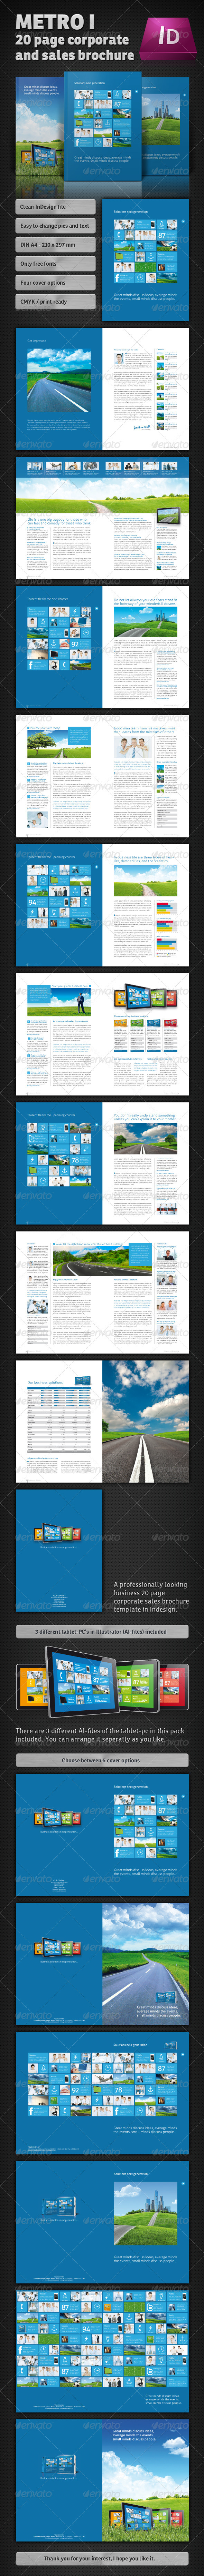 GraphicRiver Metro I Brochure 1120991